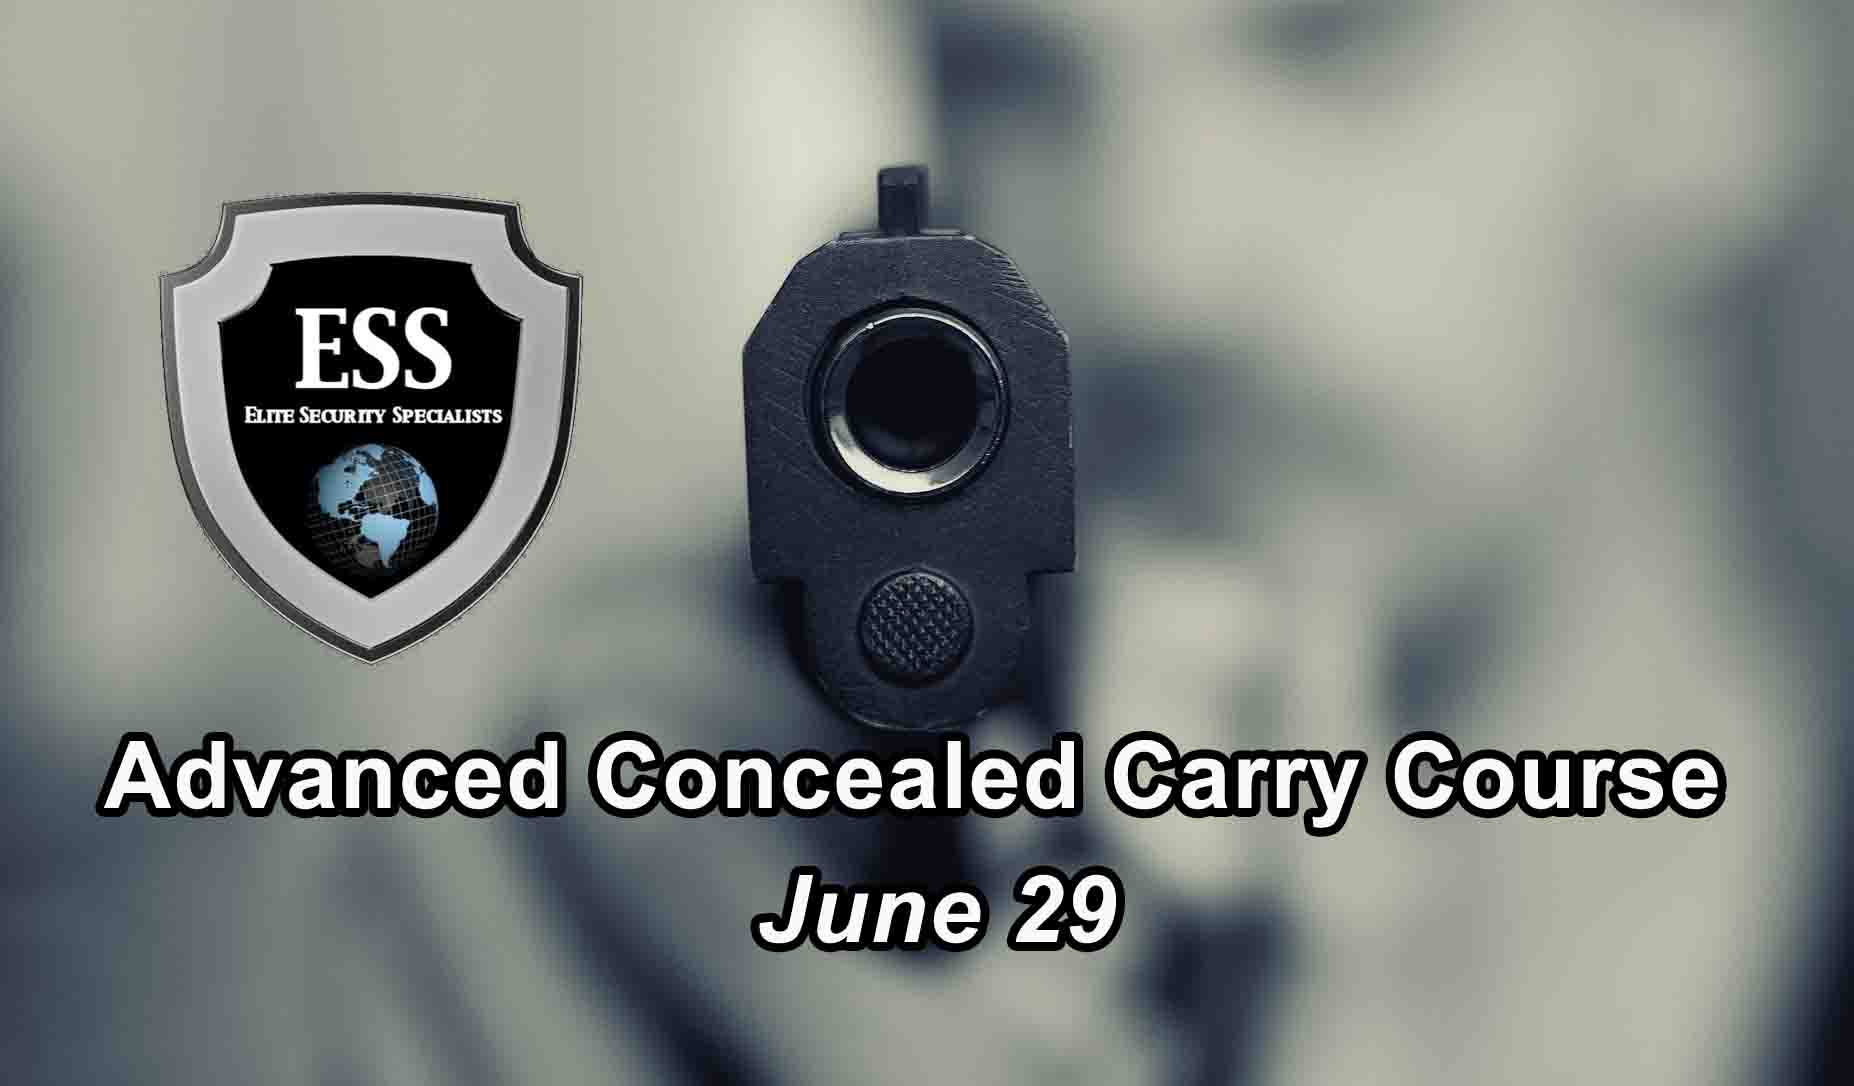 Advanced Concealed Carry Training in Tampa June 29